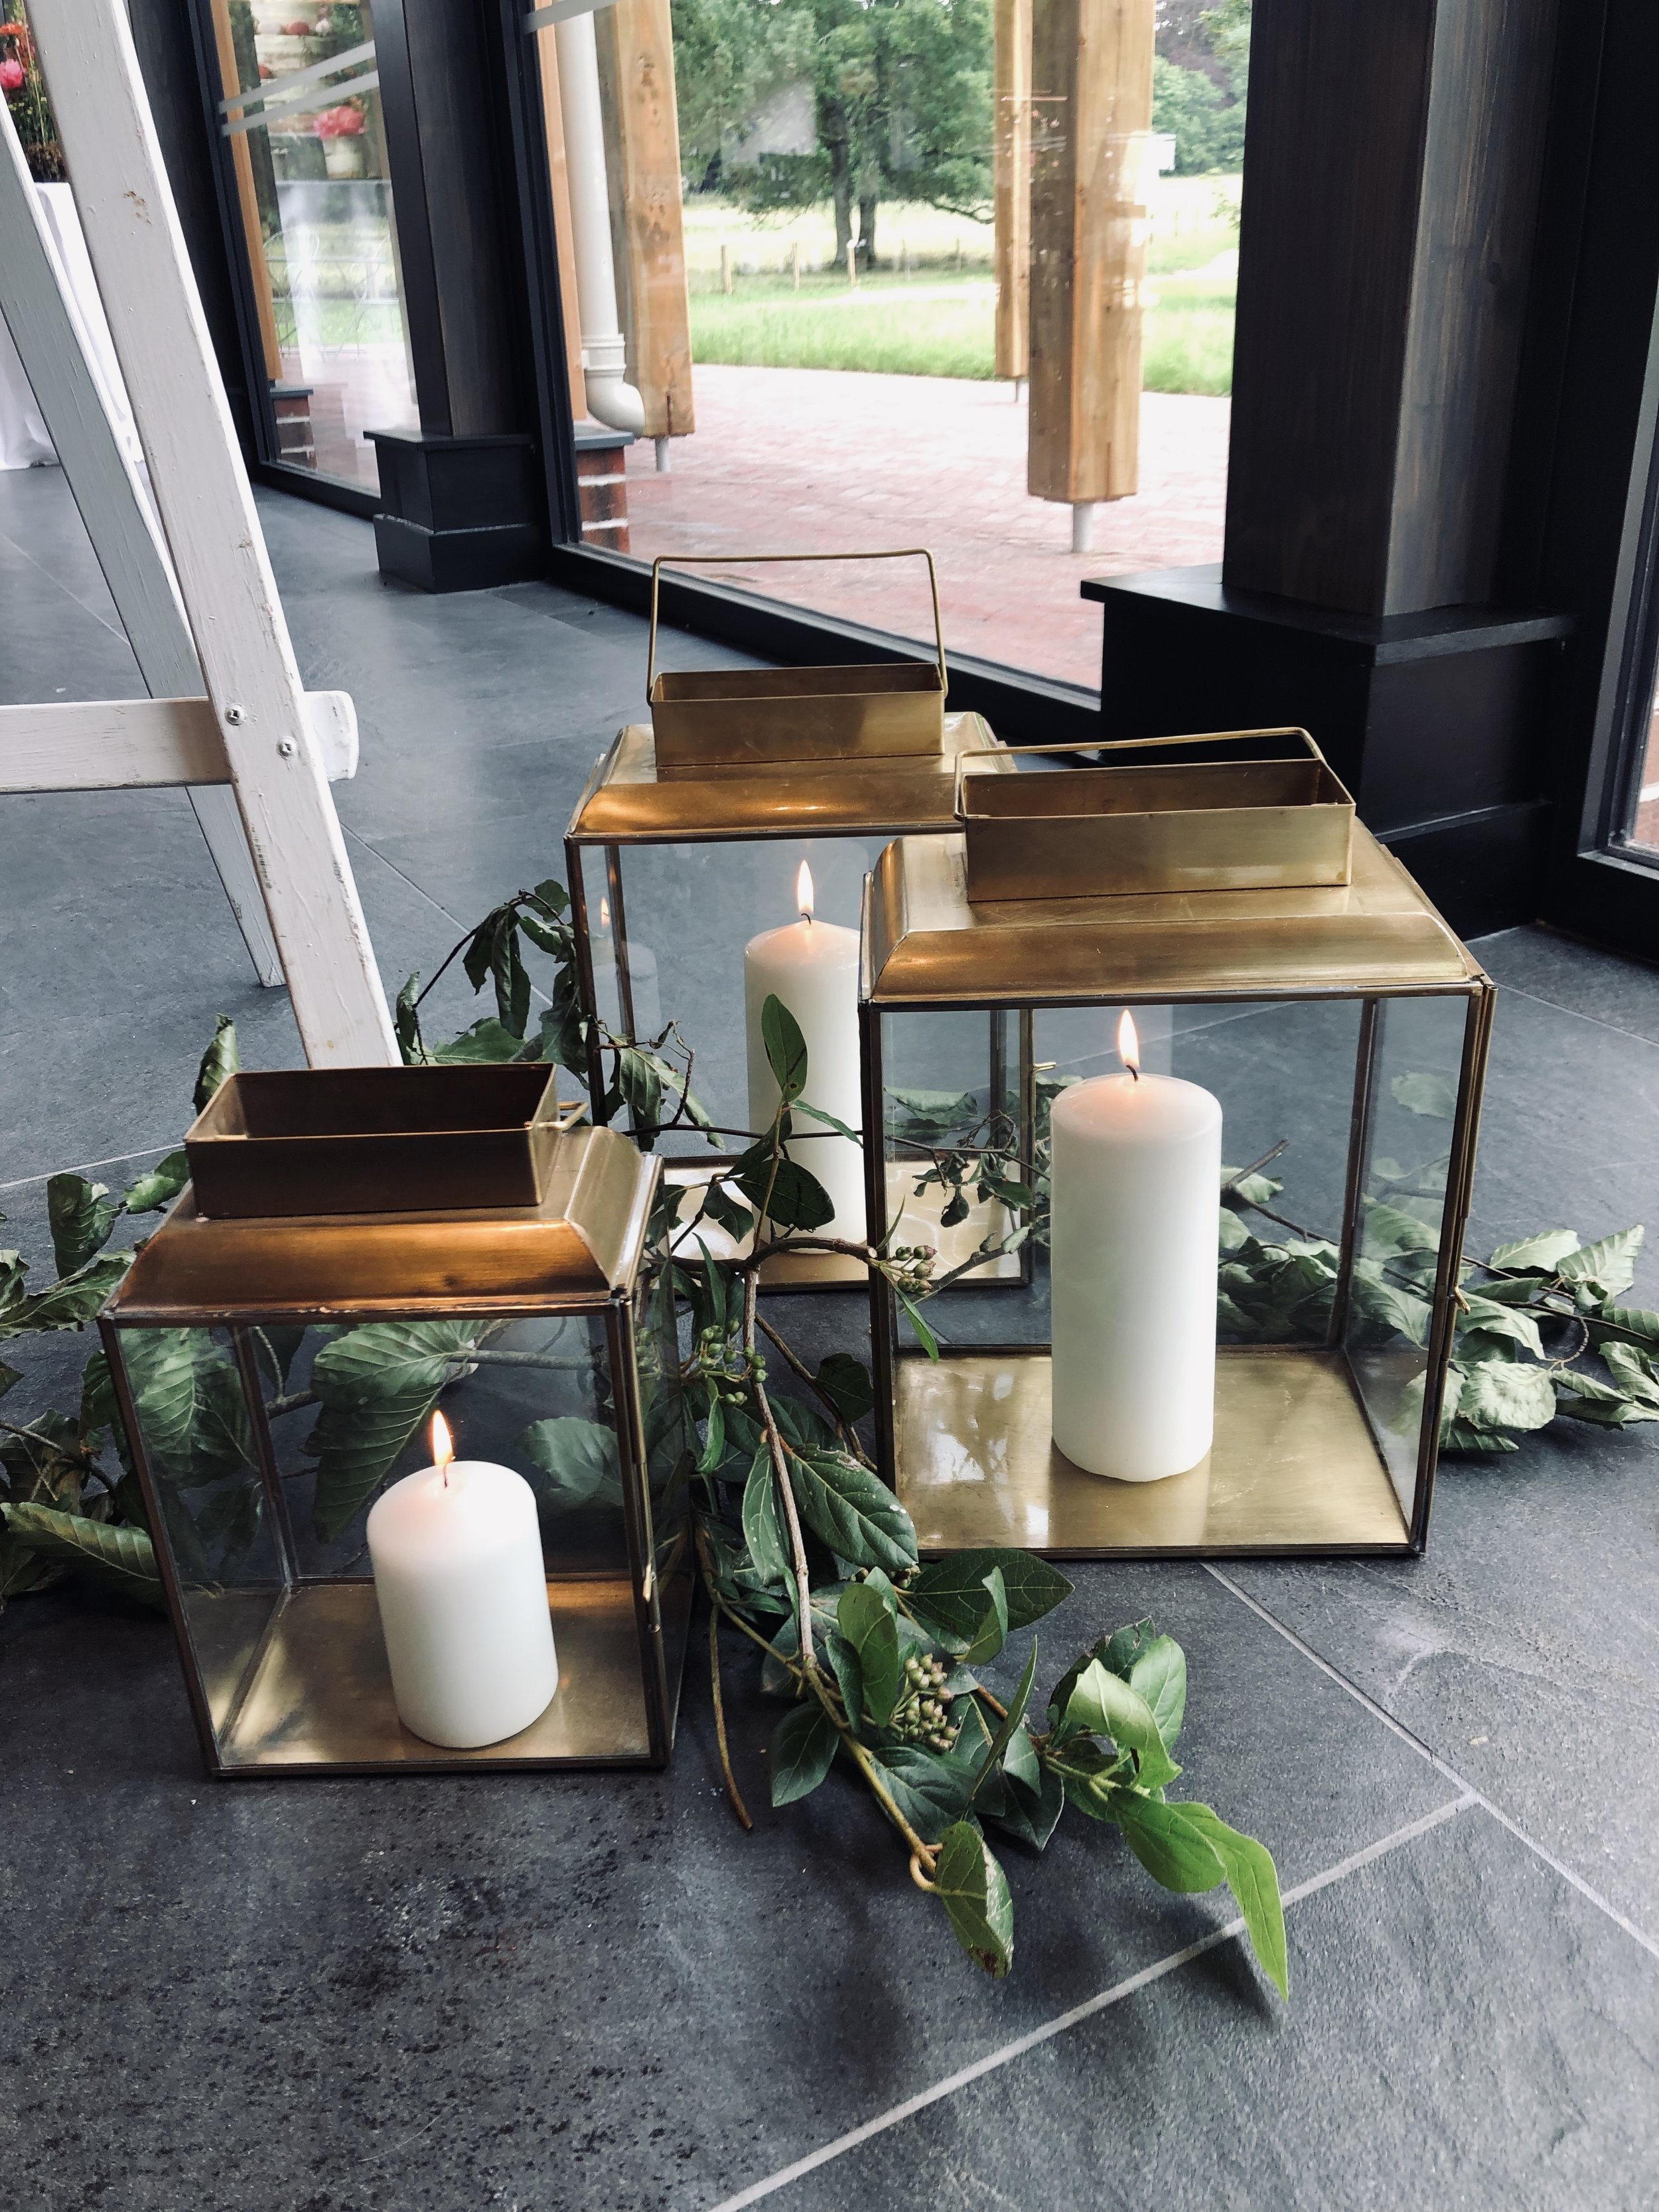 Nkuku Antique Brass Lanterns - Perfect for the Aisle or just to add a touch of romance to your wedding dayAvailable inLarge: £20.00 EachMedium: £15.00 EachI currently stock x4 Large and x4 Small. Candle includedFoliage can be included on request.